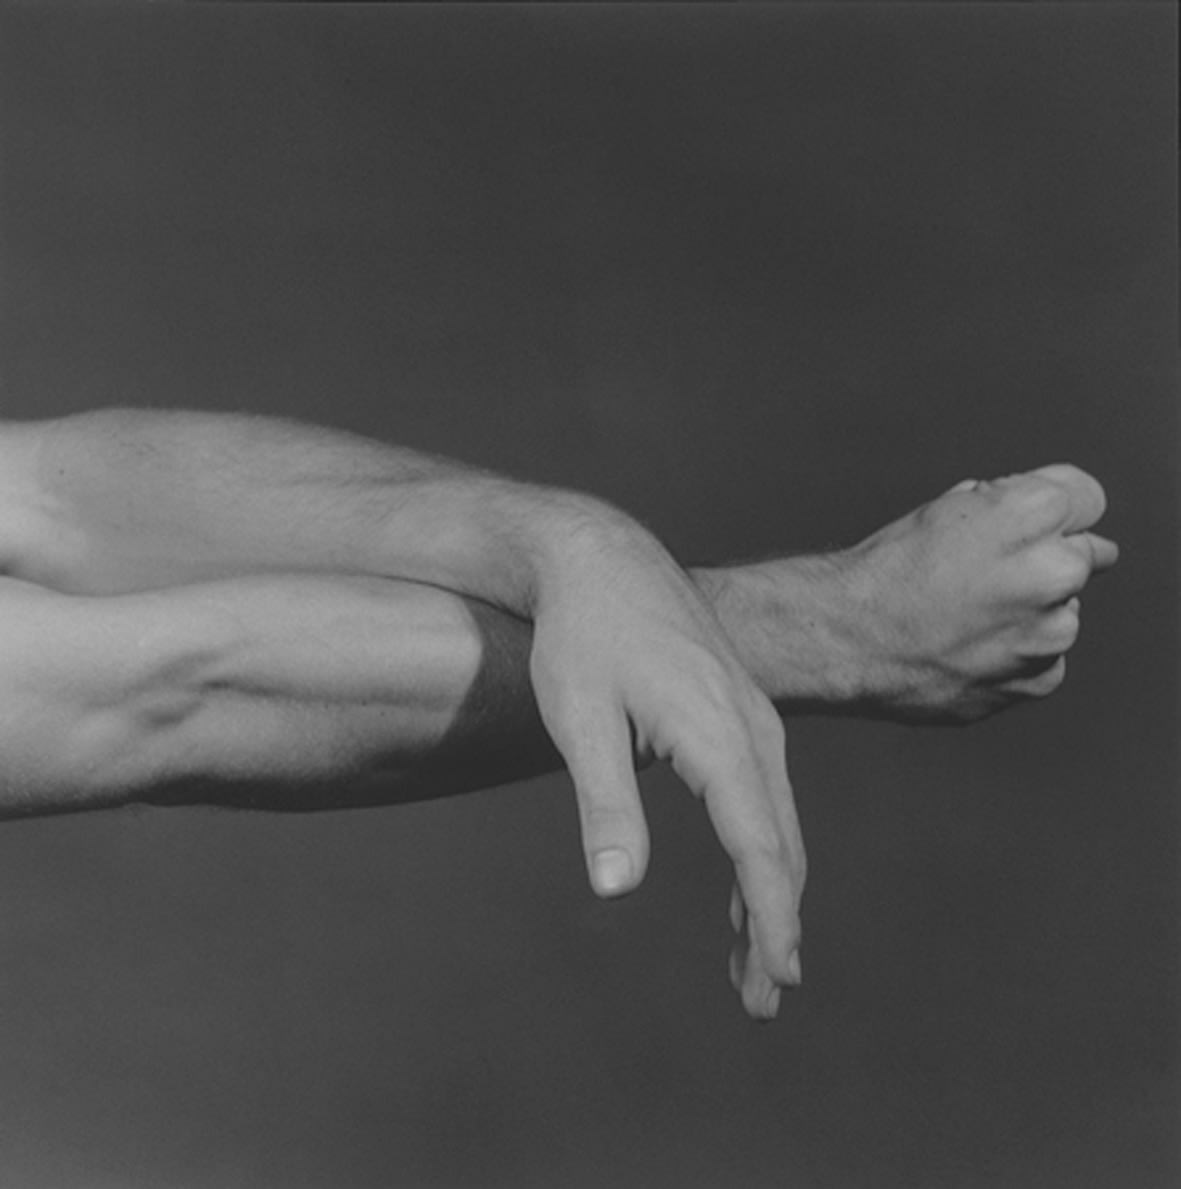 """<span class=""""link fancybox-details-link""""><a href=""""/exhibitions/120/works/artworks7743/"""">View Detail Page</a></span><div class=""""artist""""><strong> Robert Mapplethorpe</strong></div><div class=""""title""""><em>NYC Contemporary Ballet</em>, 1980 / printed 2010</div><div class=""""signed_and_dated"""">unsigned</div><div class=""""medium"""">gelatin silver print</div><div class=""""dimensions"""">image: 35.10 x 35.10 cm<br>framed: 58.7 x 54.3 cm</div><div class=""""edition_details""""></div>"""